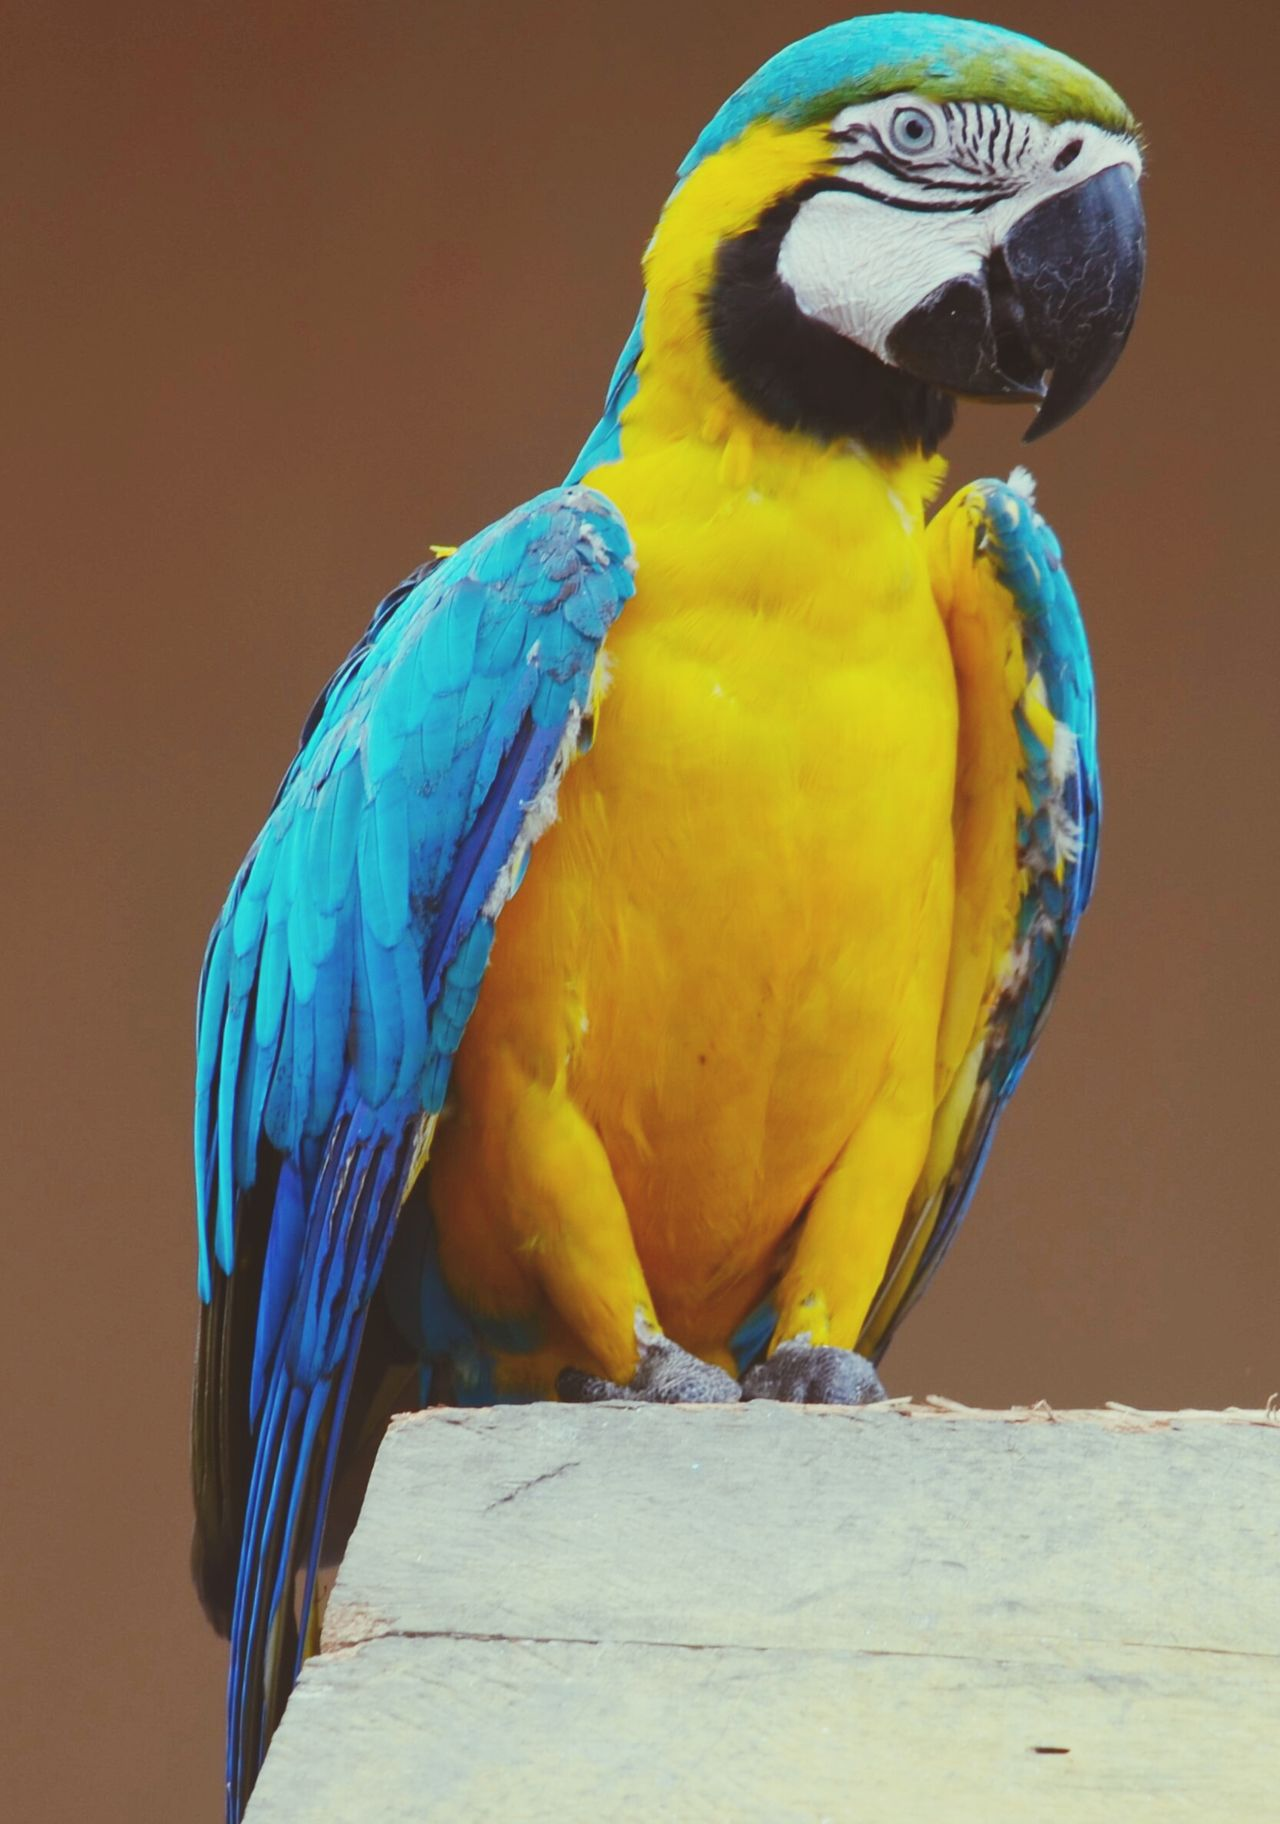 Travel Colombia Parrot Fauna Animal Colorful Rainforest Bird Simple Colors In Nature